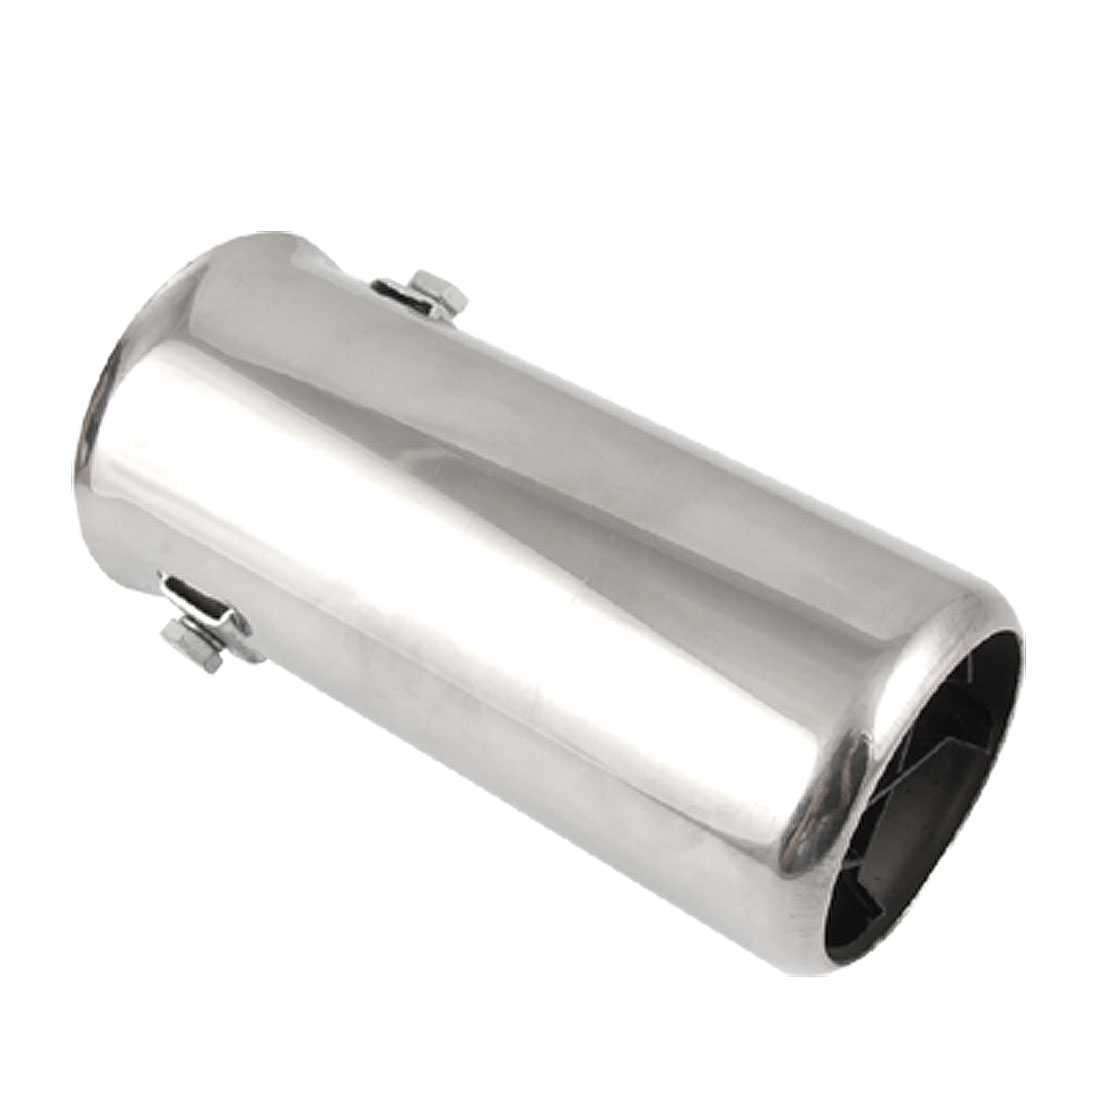 Car Auto Silver Tone Round Exhaust Muffler Extension Pipe